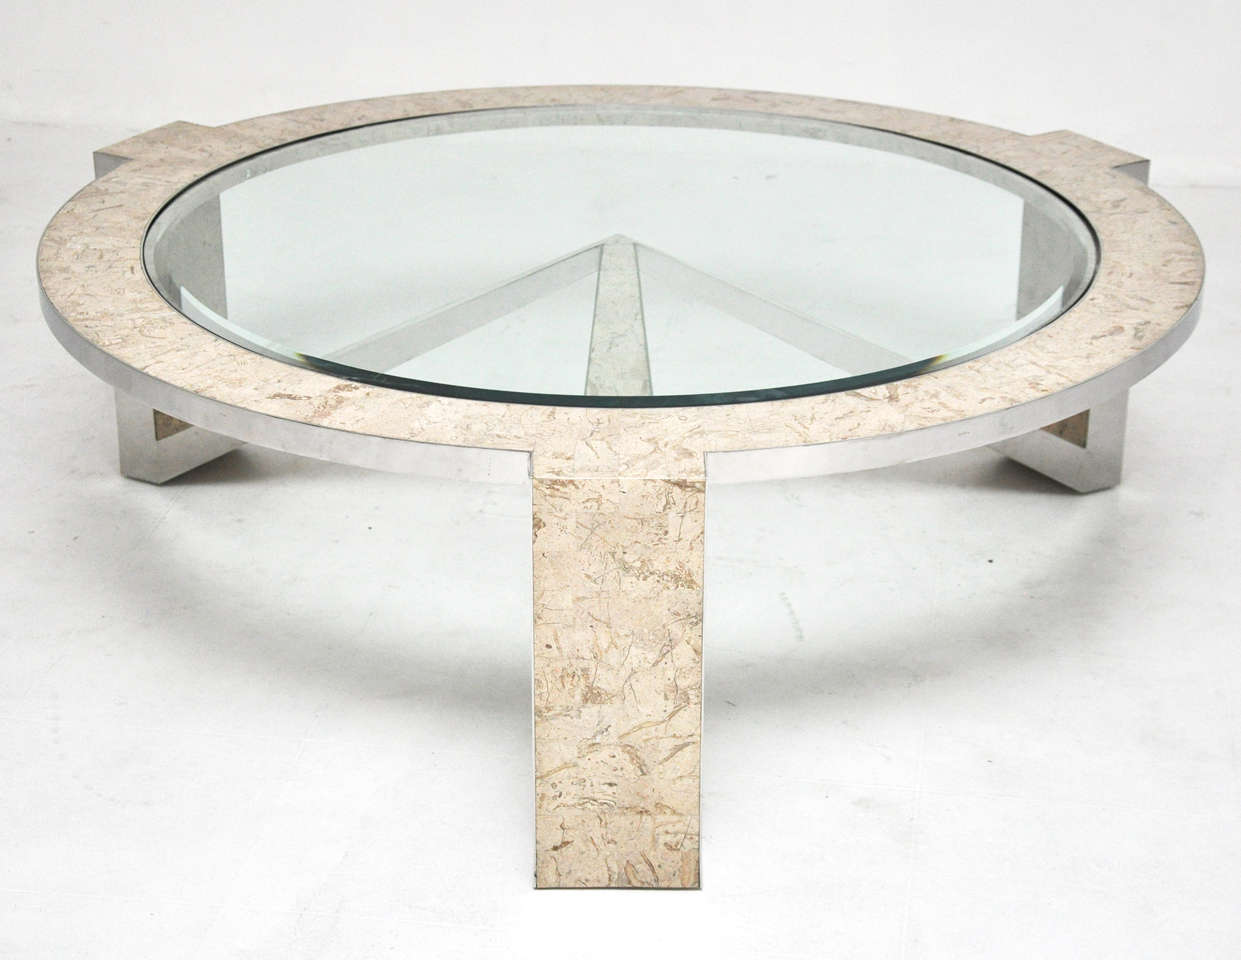 Stone And Steel Coffee Table Robert Marcius At 1stdibs